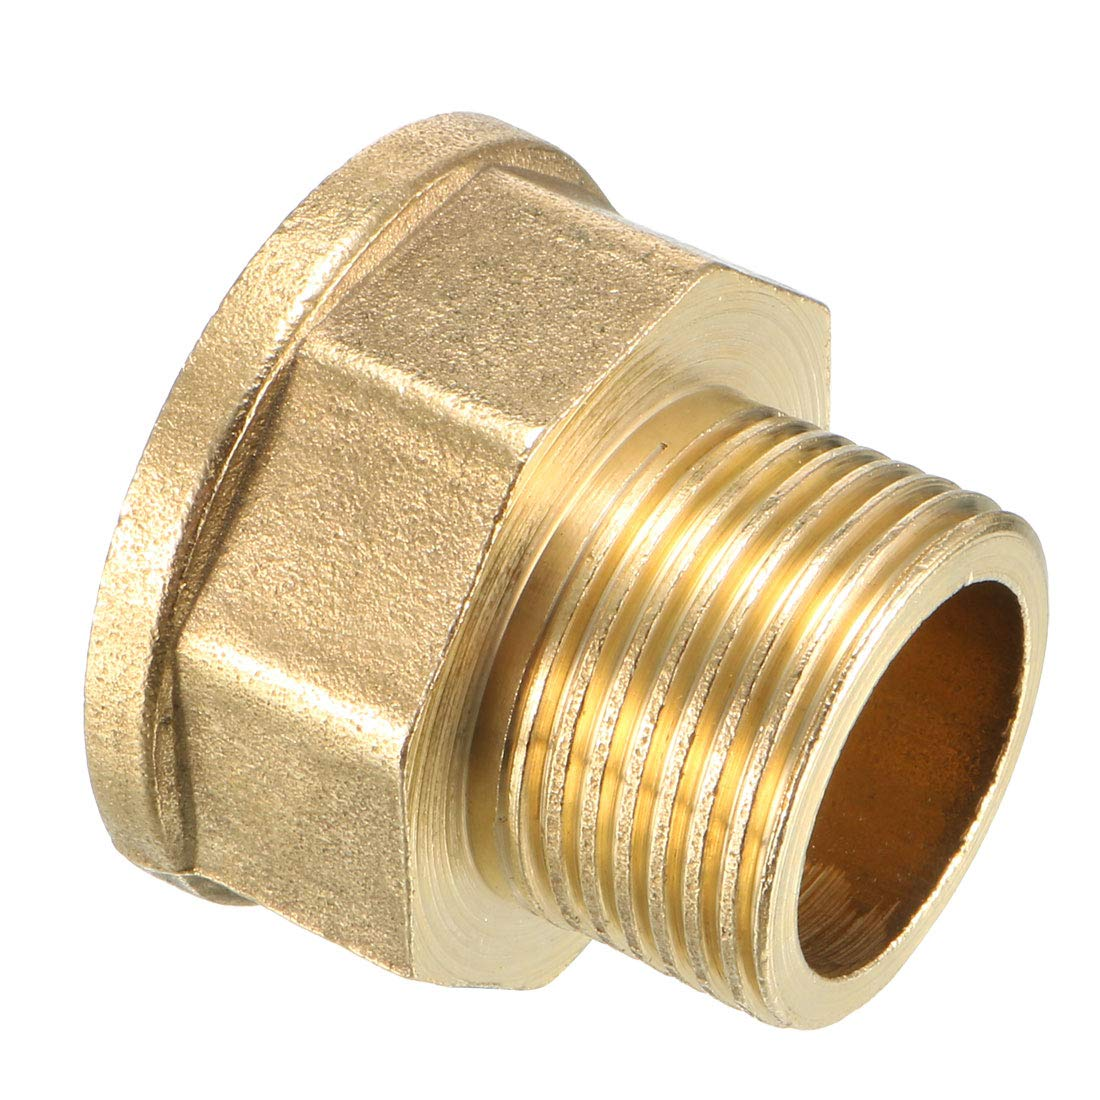 uxcell Brass Pipe Fitting 3//8 PT Male x 1//2 PT Female Coupling Adapter